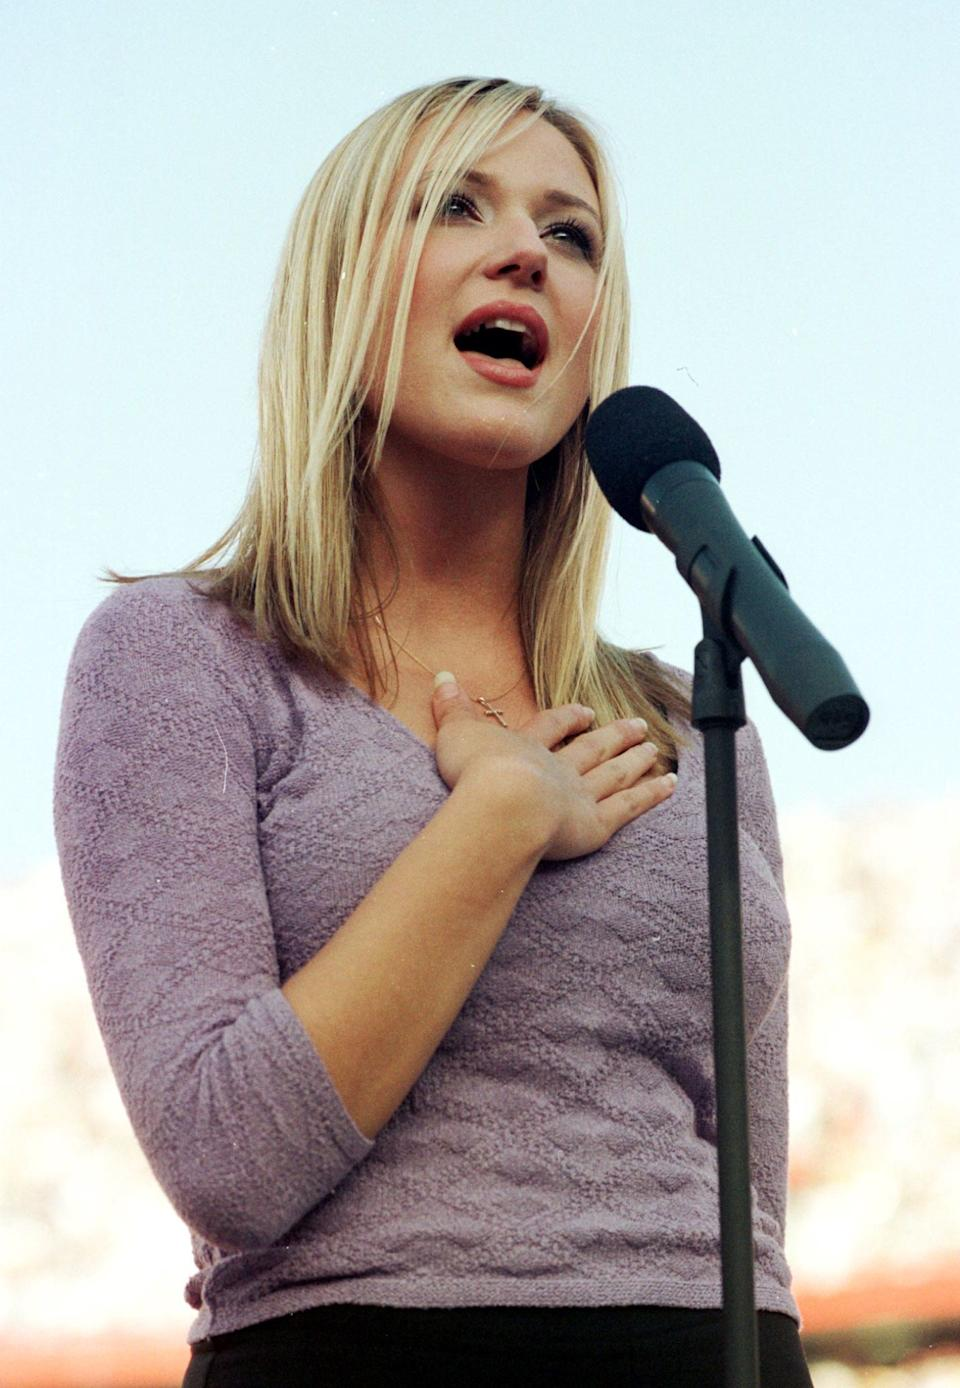 US folk singer Jewel performs the US national anthem on Jan. 25, 1998 before Super Bowl XXXII at Qualcomm Stadium in San Diego, California.The defending champion Green Bay Packers playedthe Denver Broncos.